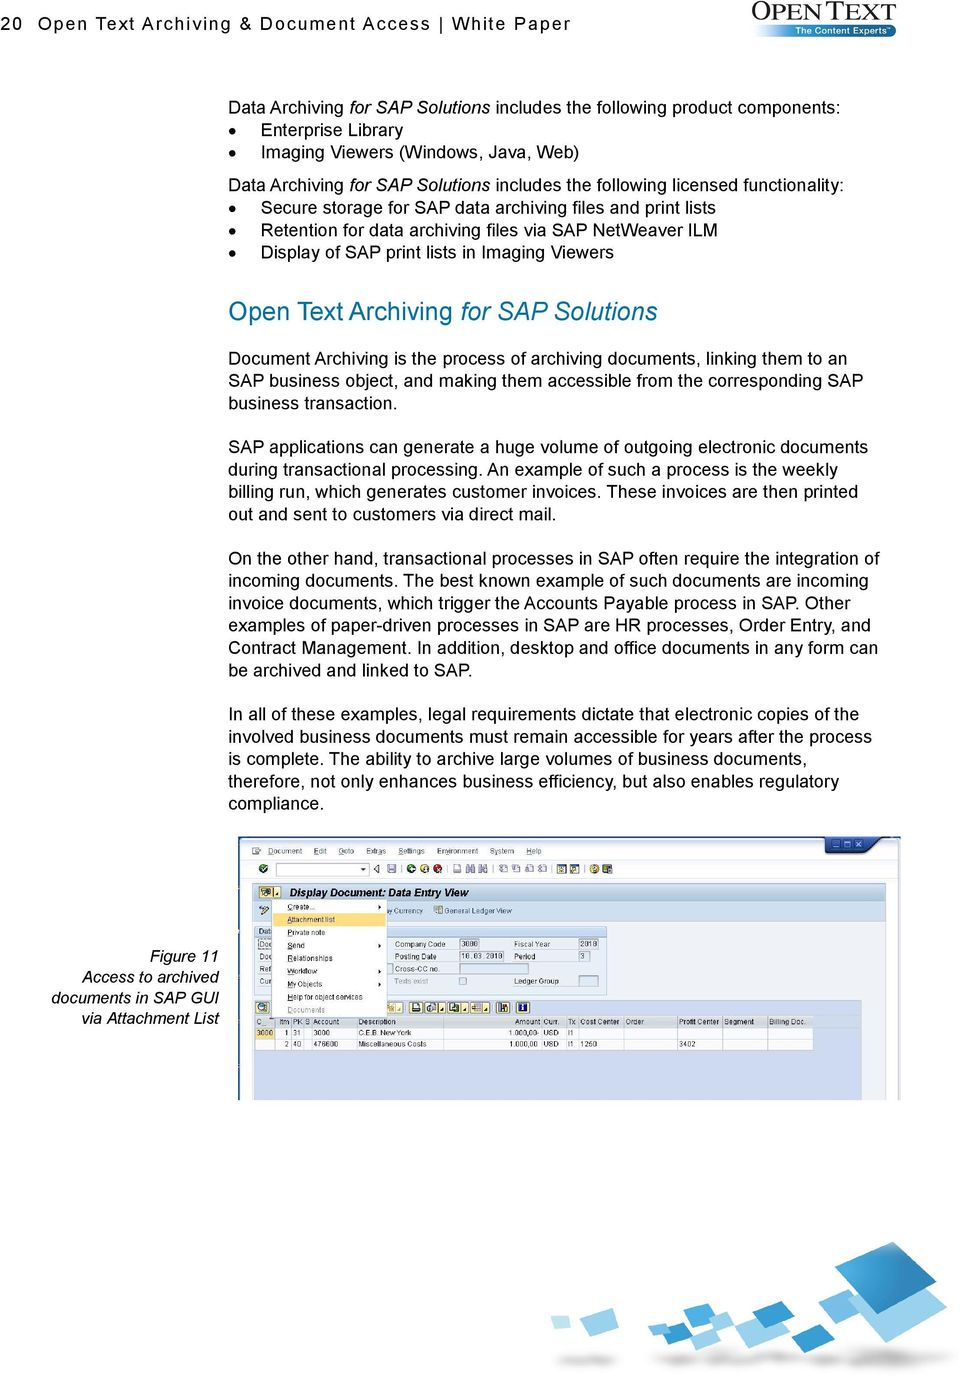 Open Text Archiving And Document Access For SAP Solutions PDF